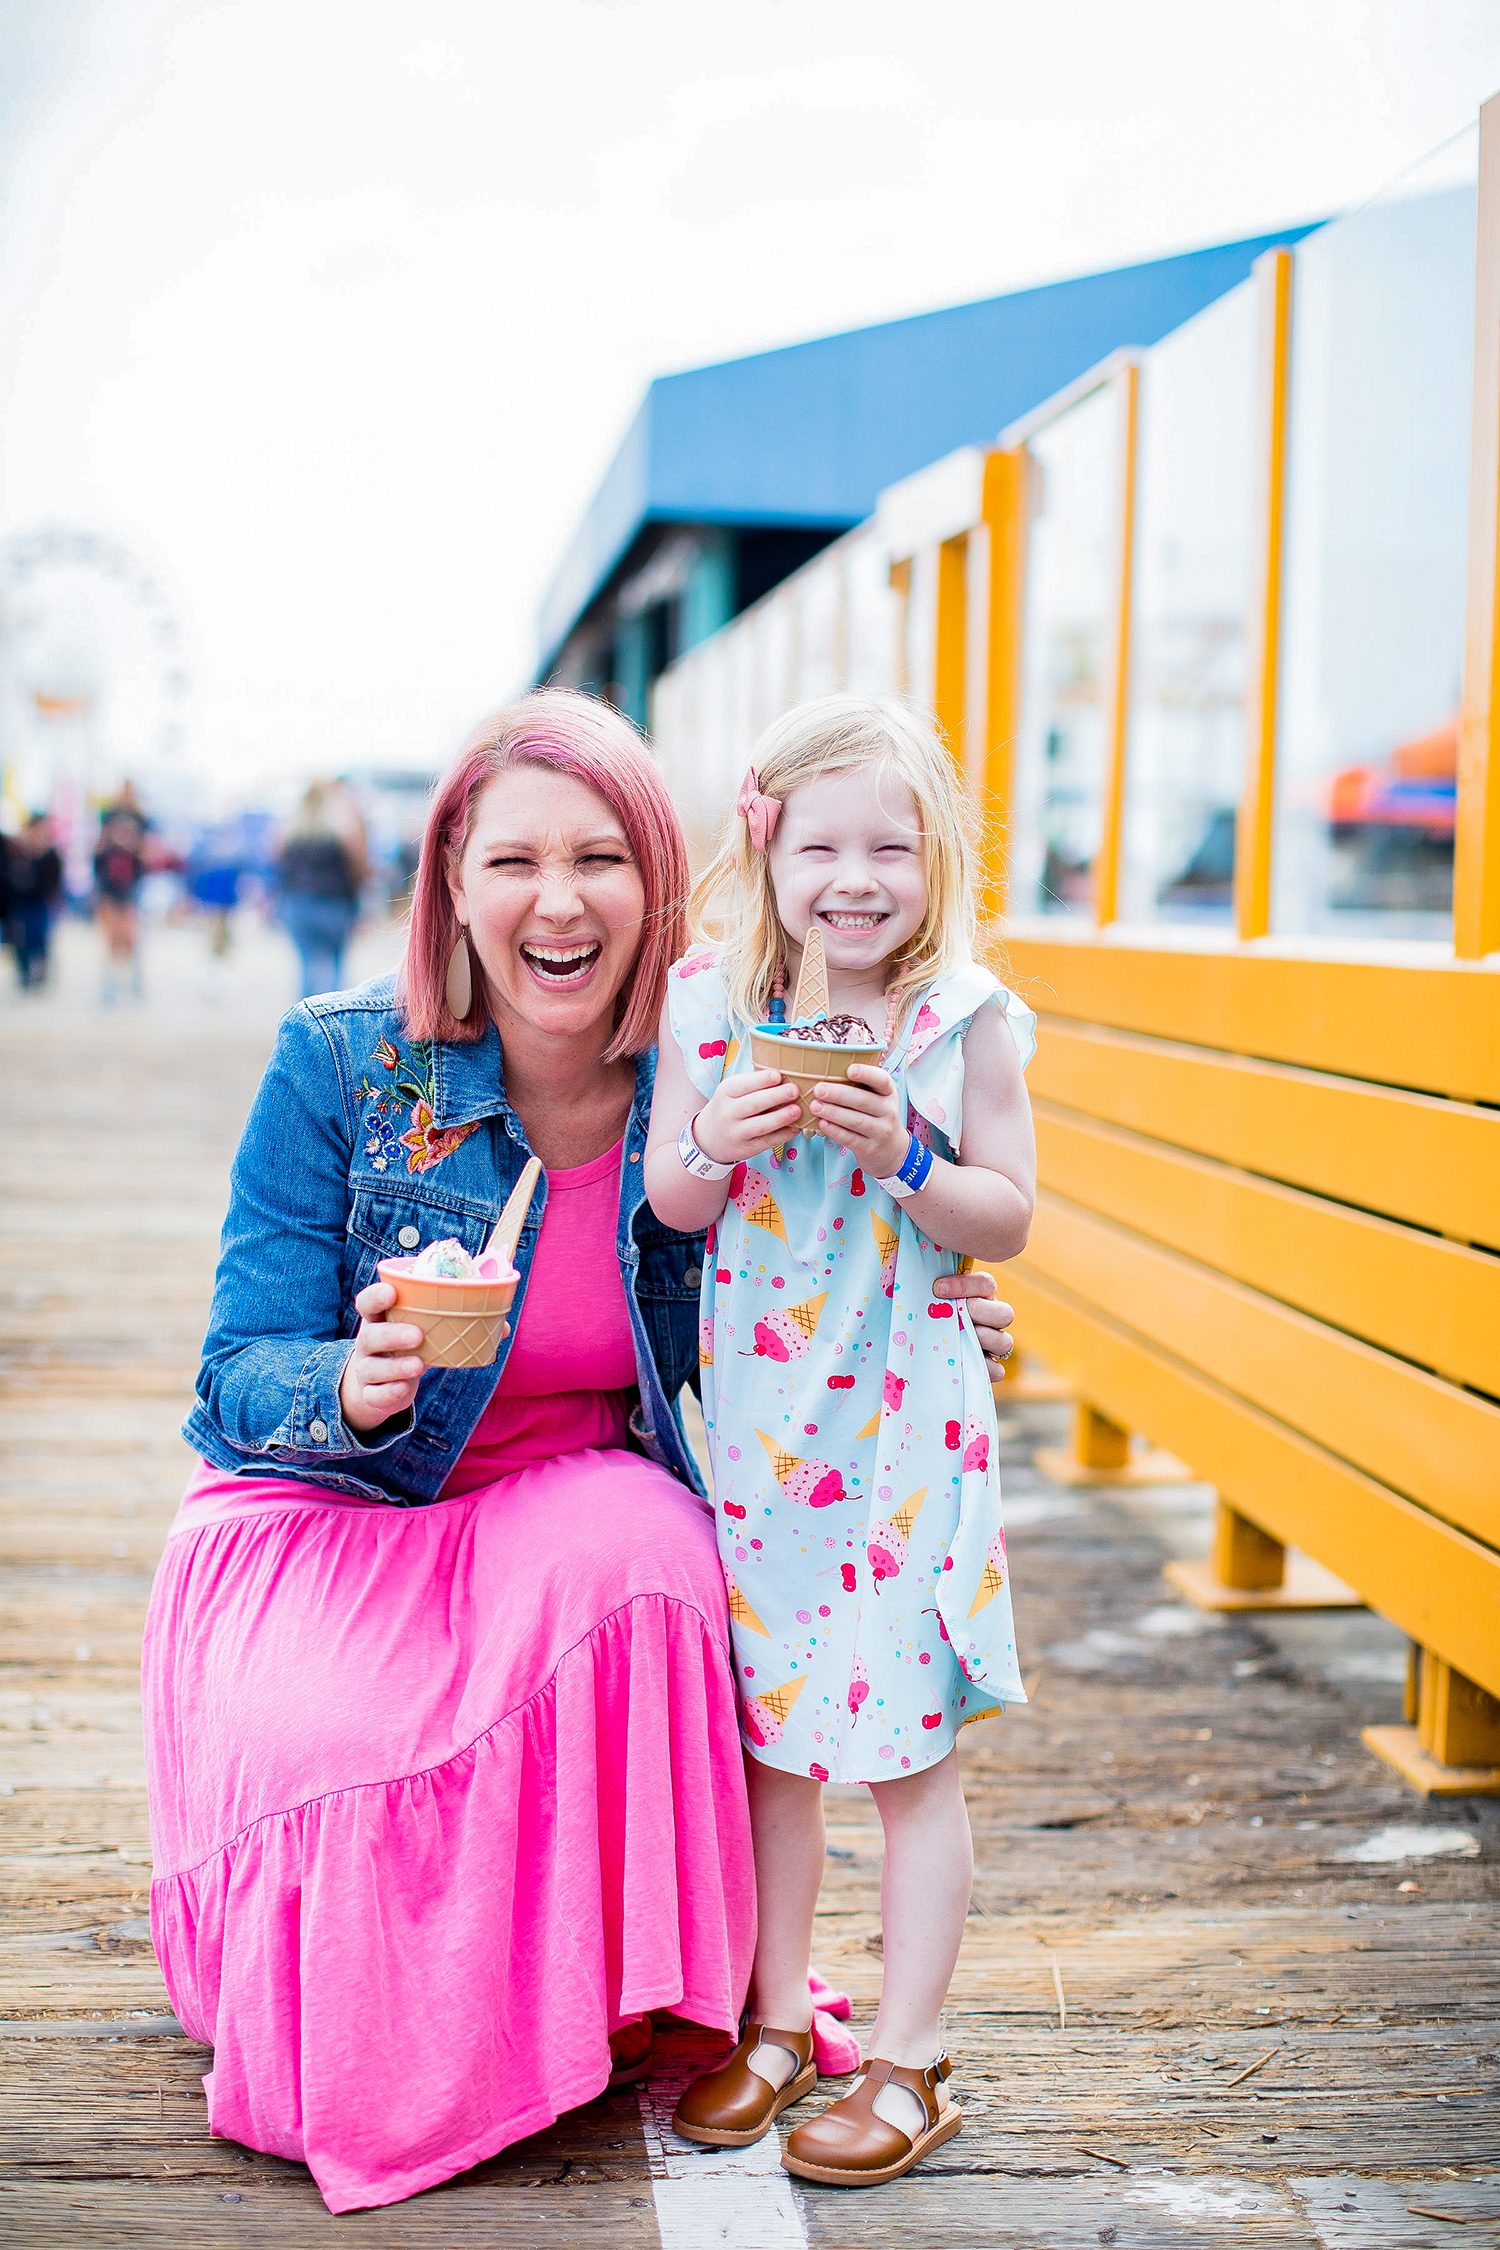 Summer Ice Cream Social: The perfect way to kick off summer